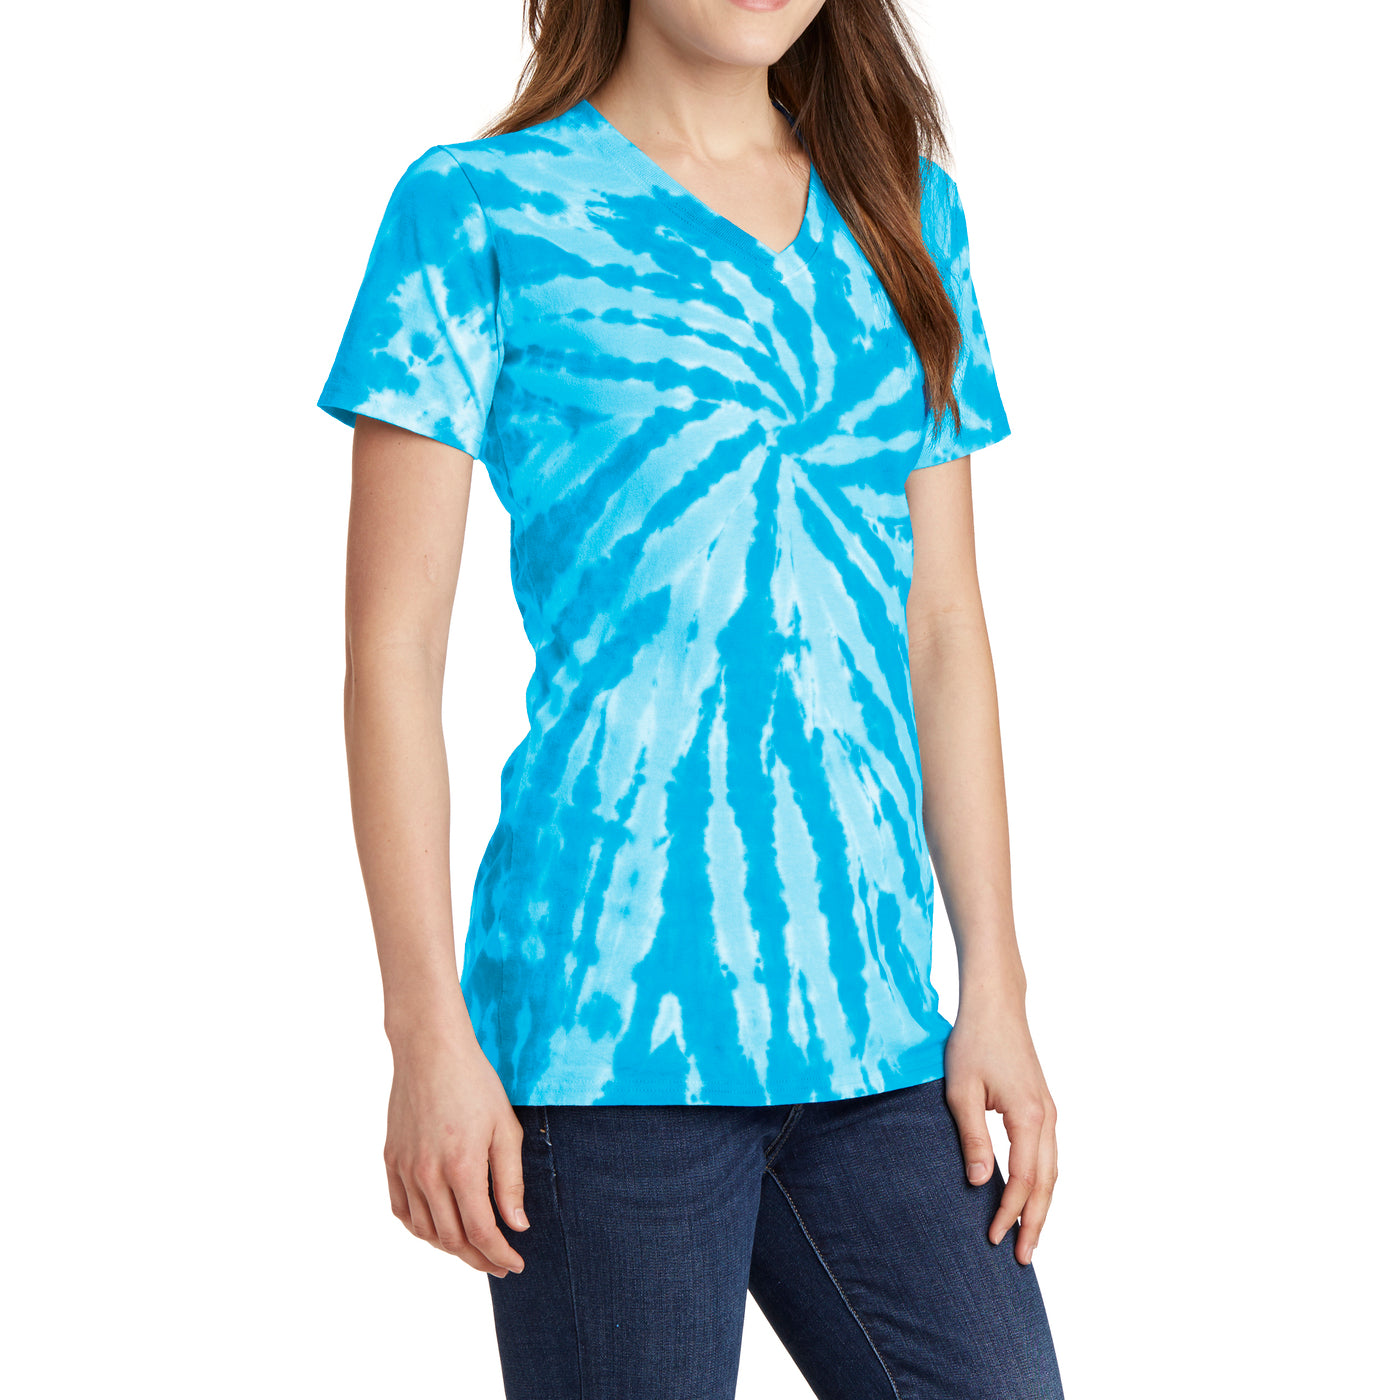 Womens Tie-Dye V-Neck Tee - Turquoise - Side